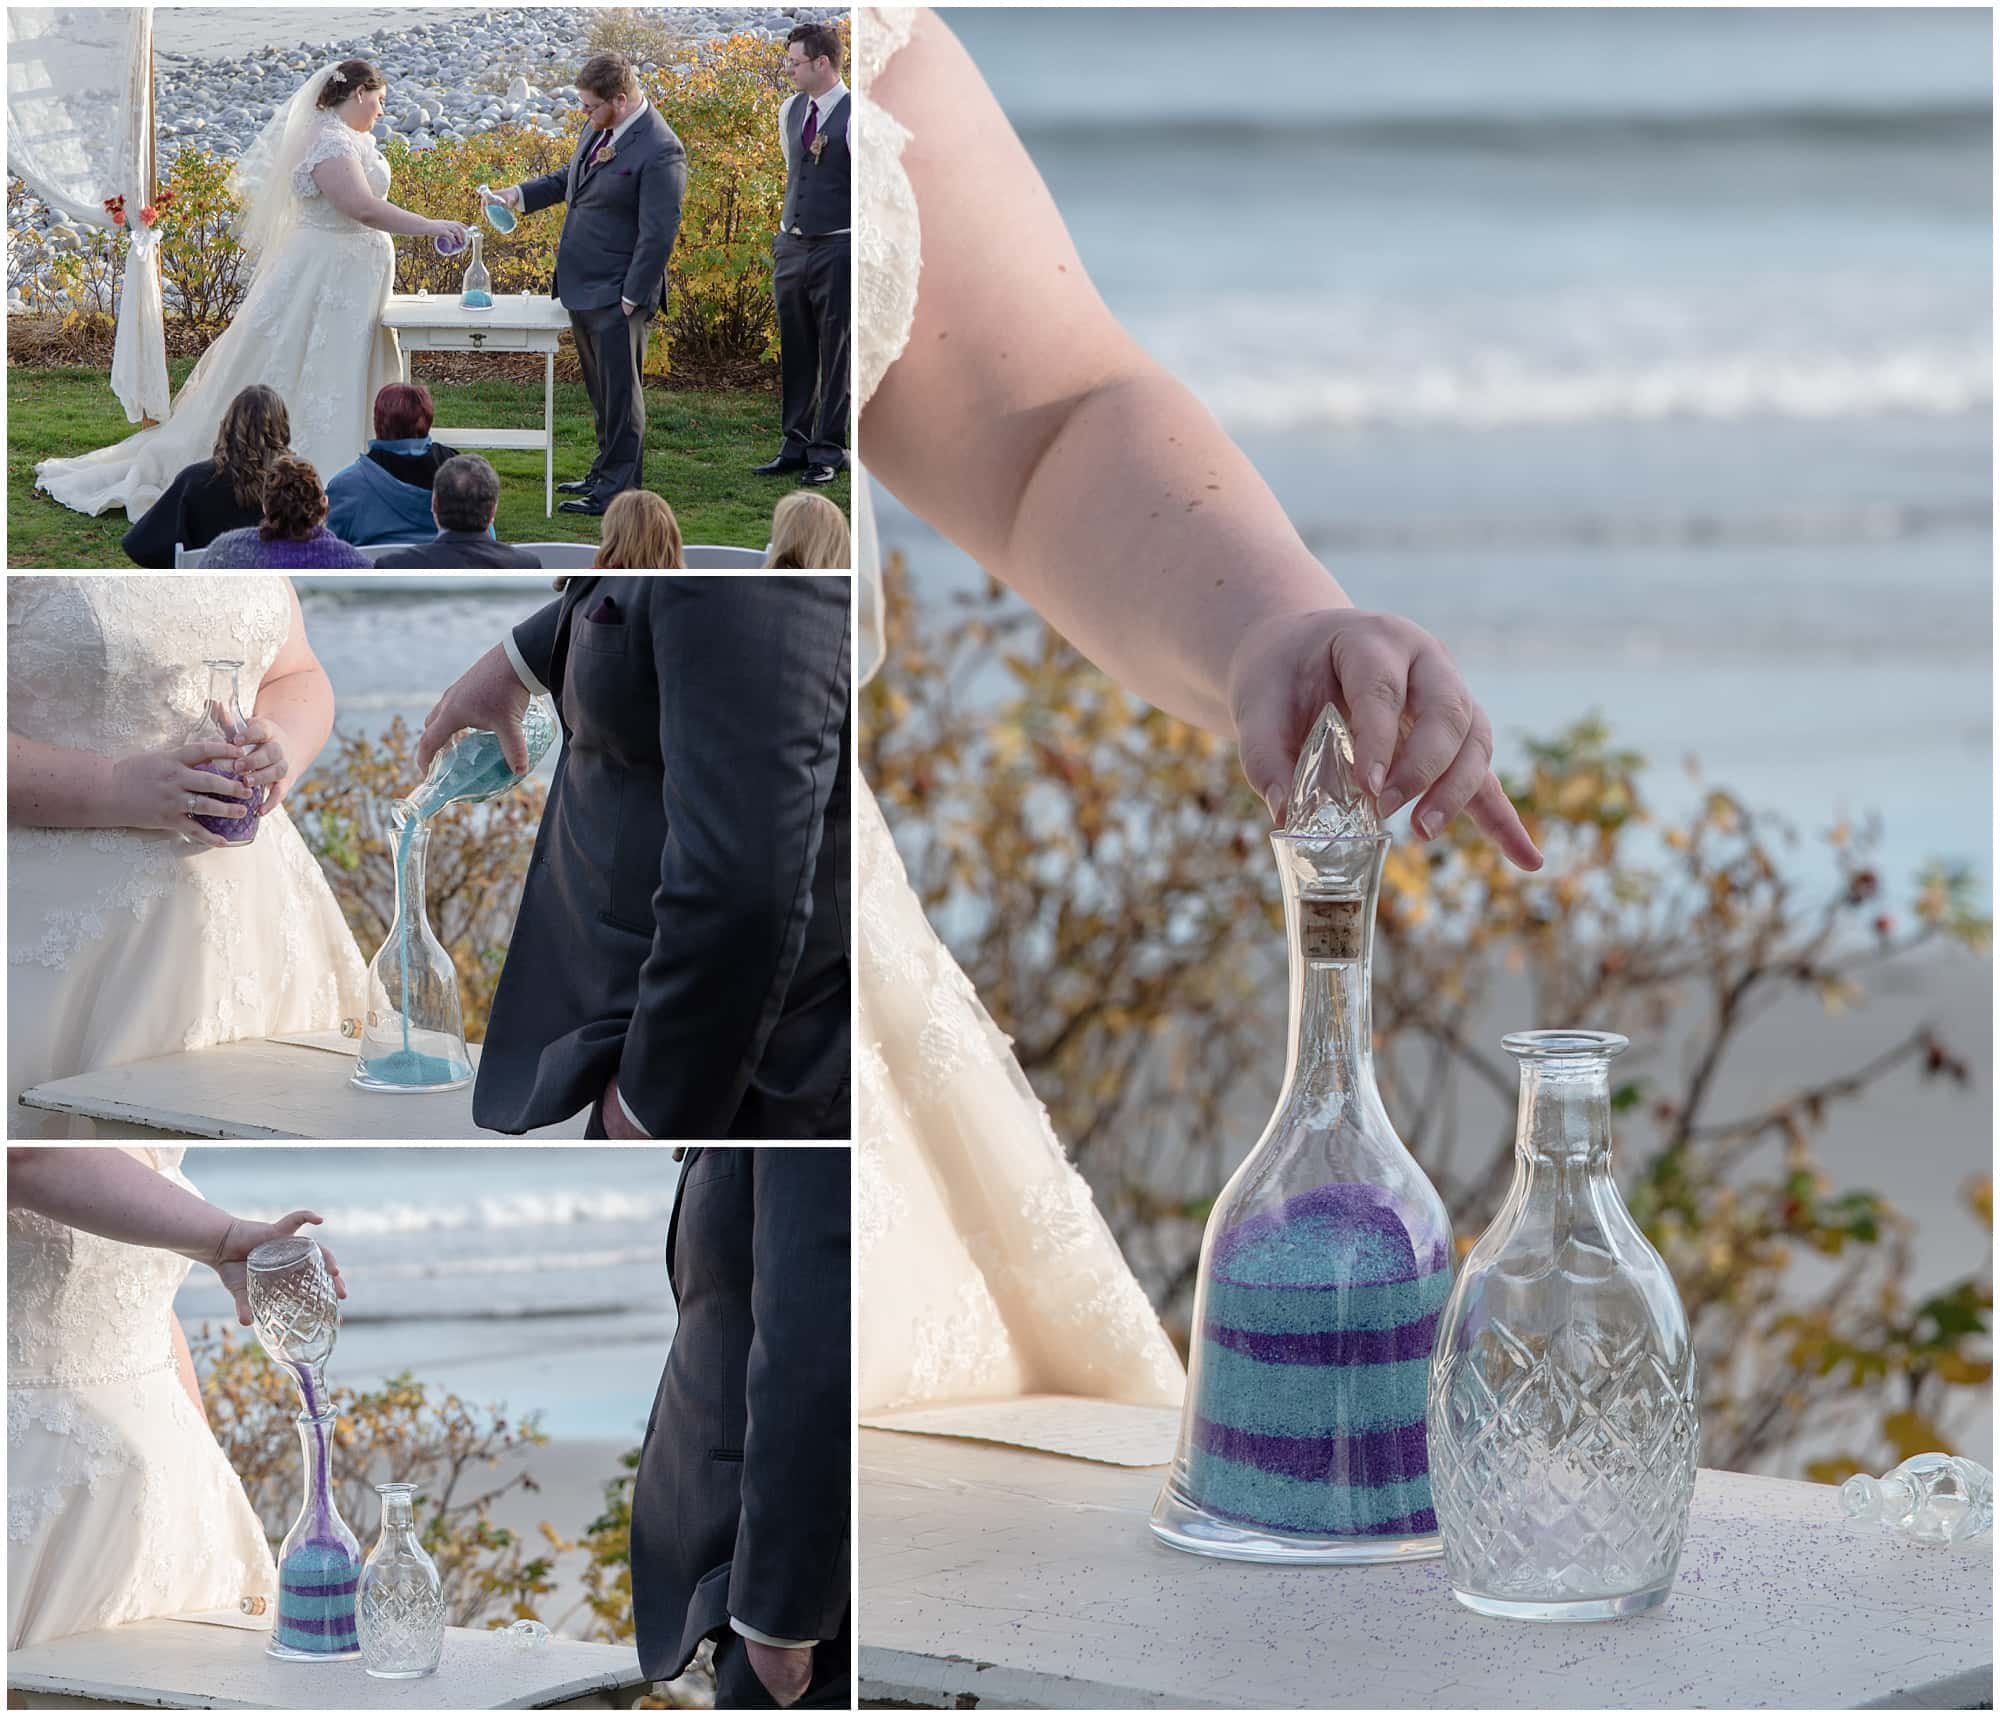 The bride and groom perform a unity wedding sand ceremony during their wedding day at White Point Beach Resort in Nova Scotia.